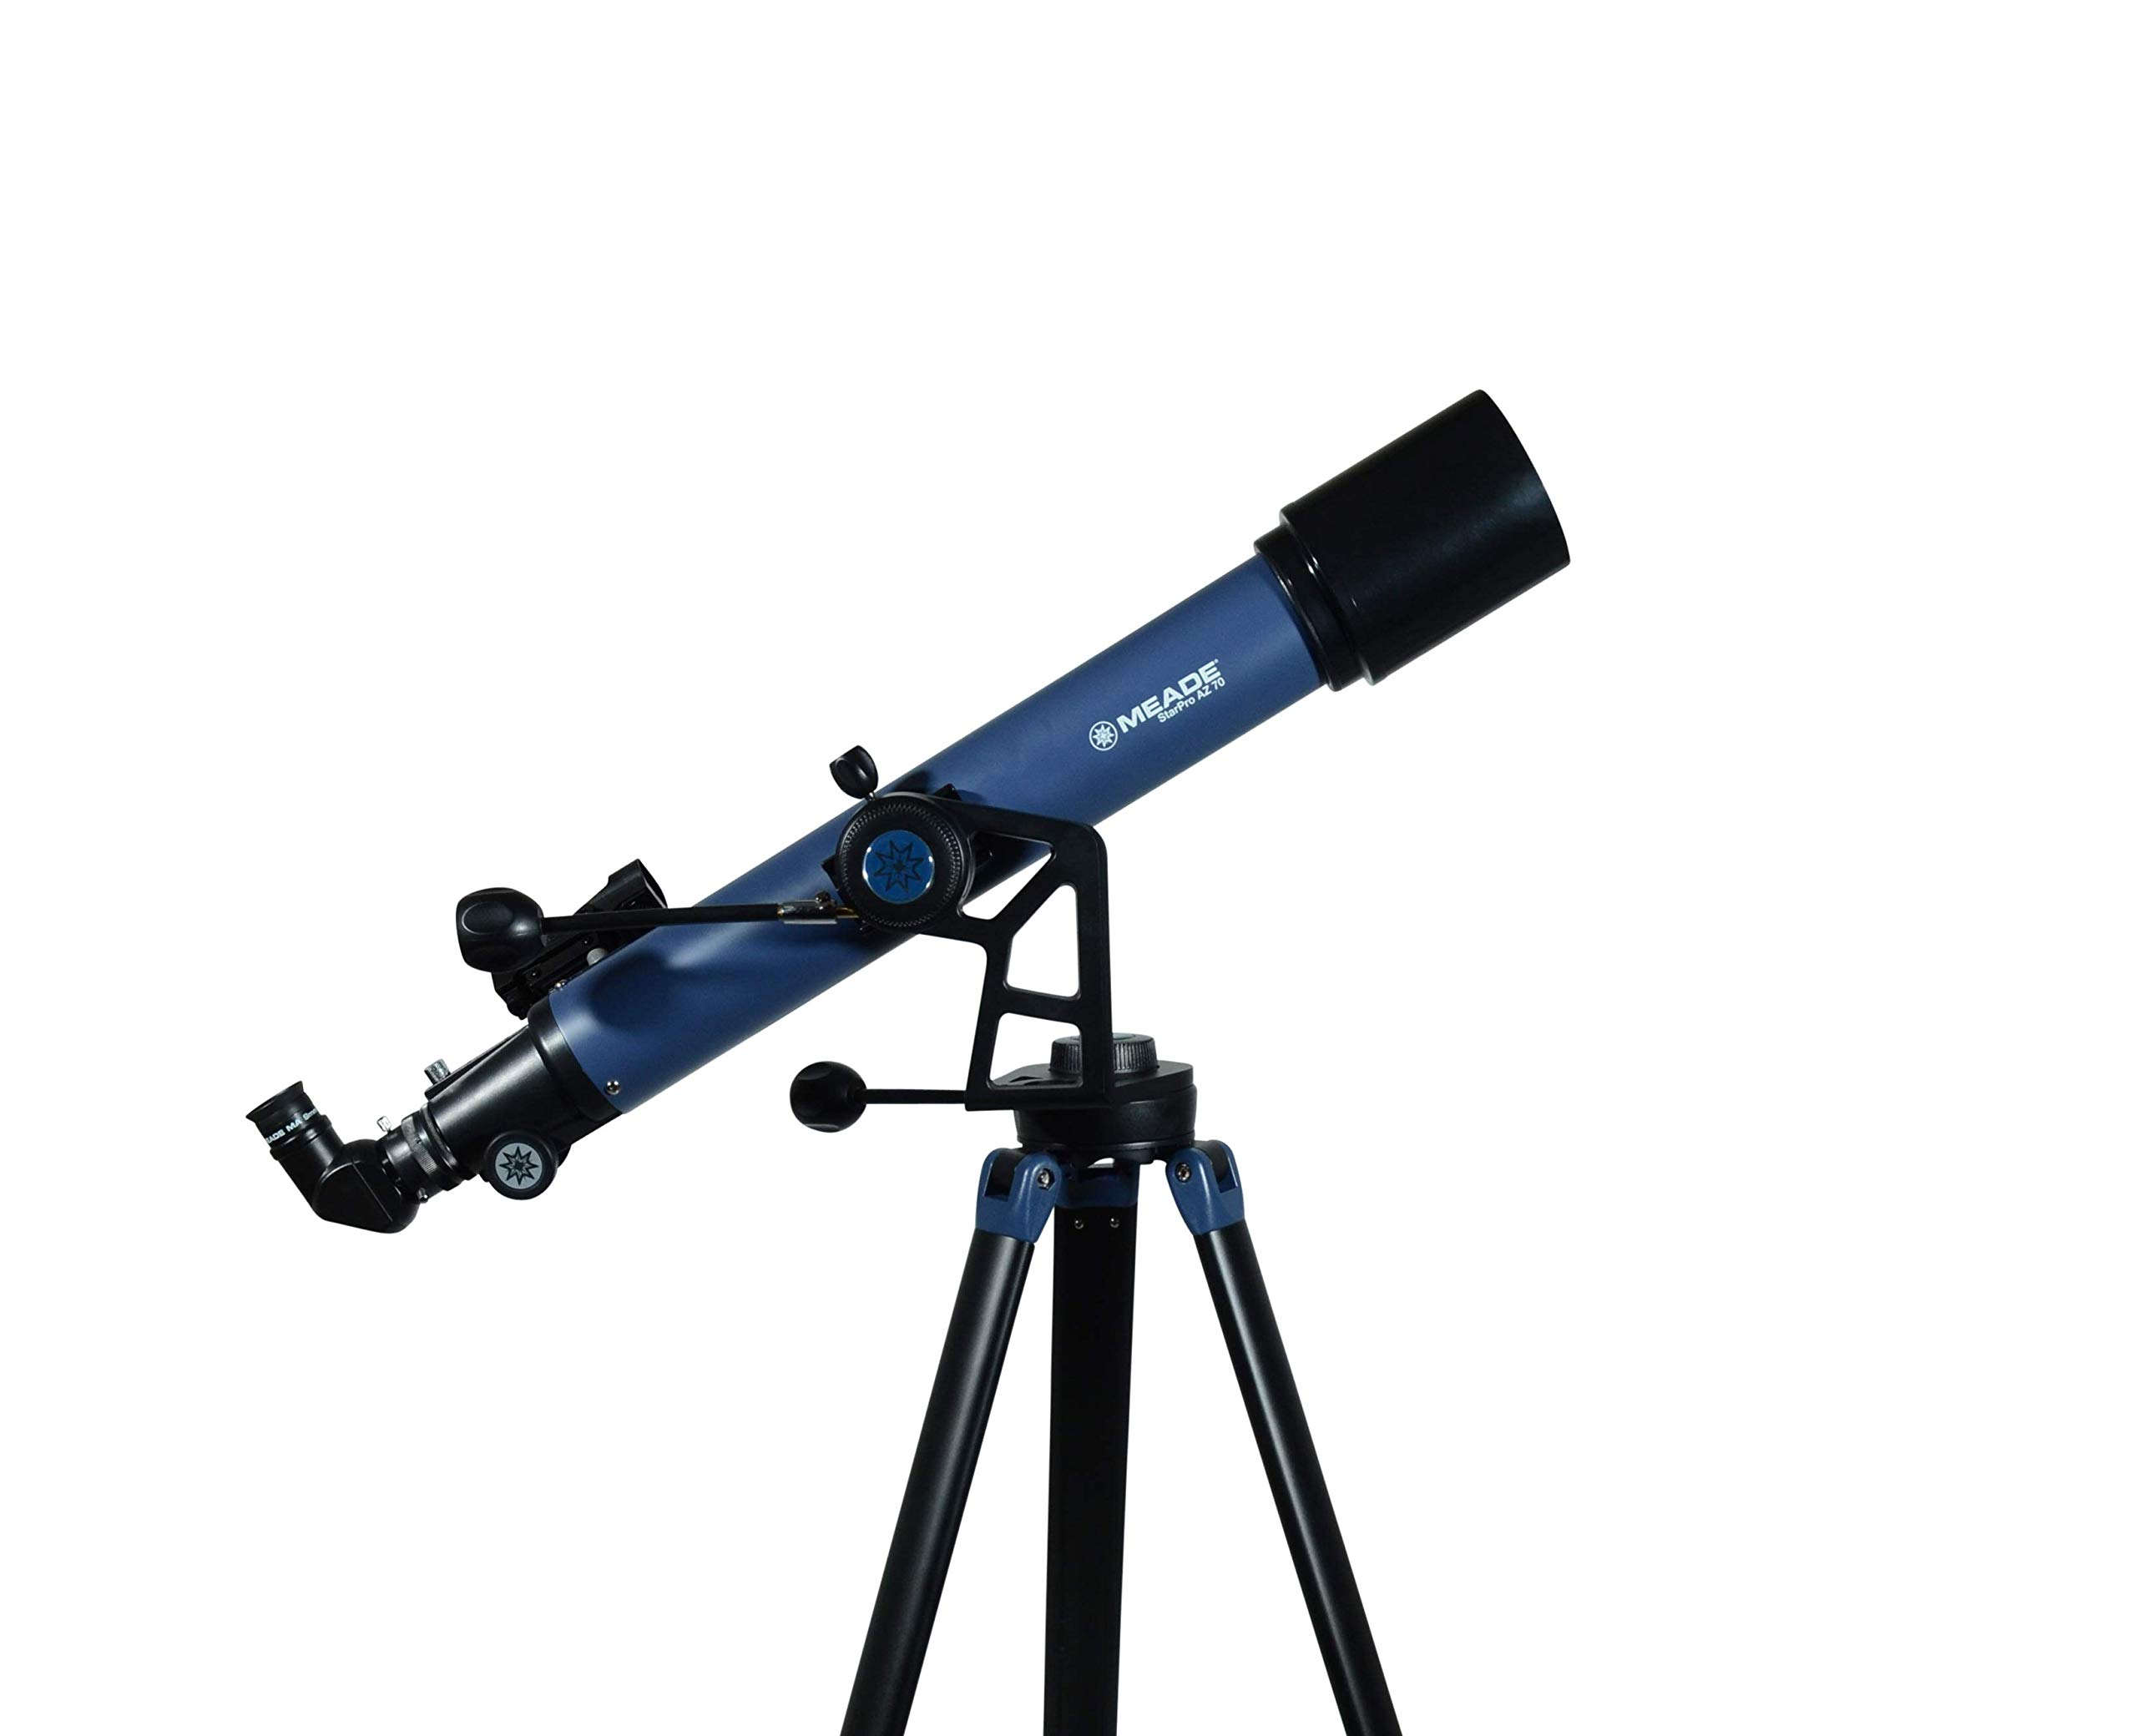 Meade Instruments 234001 Star Pro AZ 70mm Refracting Telescope and Smart Phone Adapter by MEADE (Image #3)